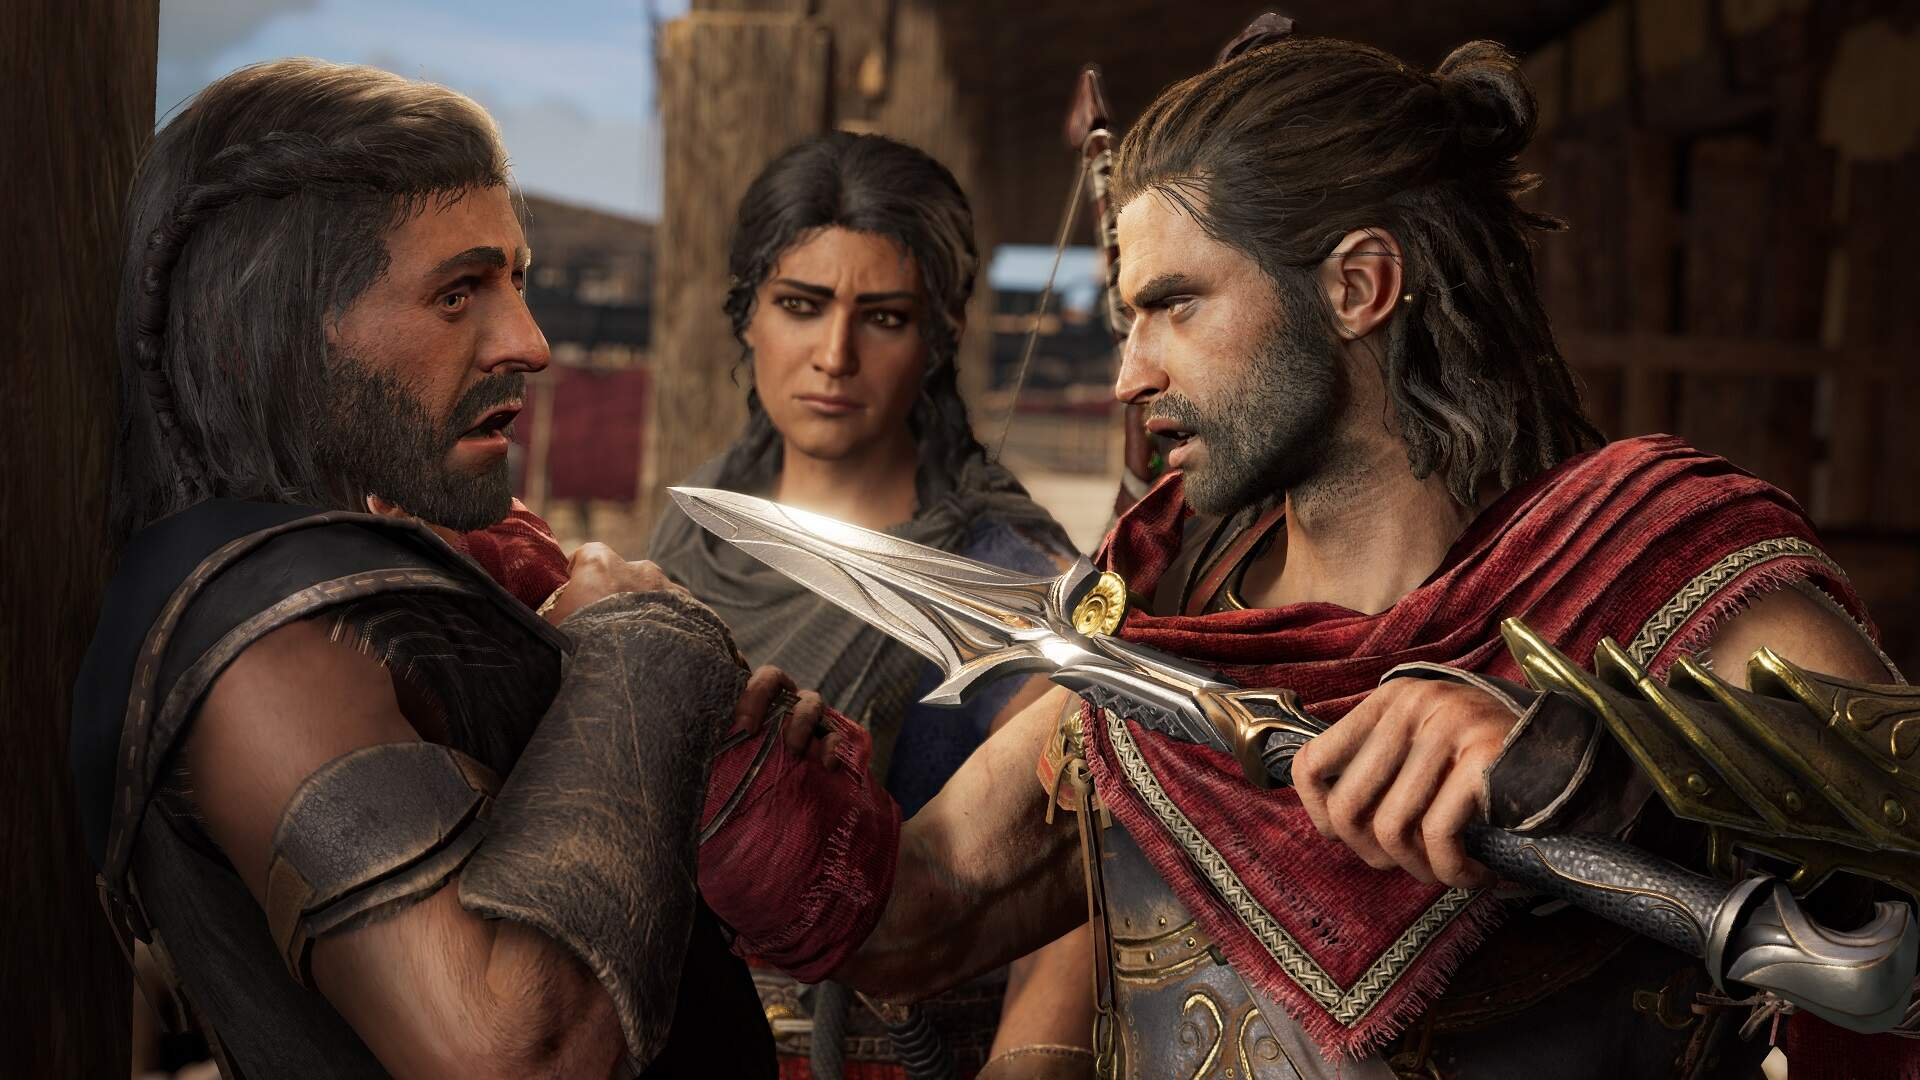 Ubisoft Faces Potential Legal Action From a French Union Following Abuse Claims